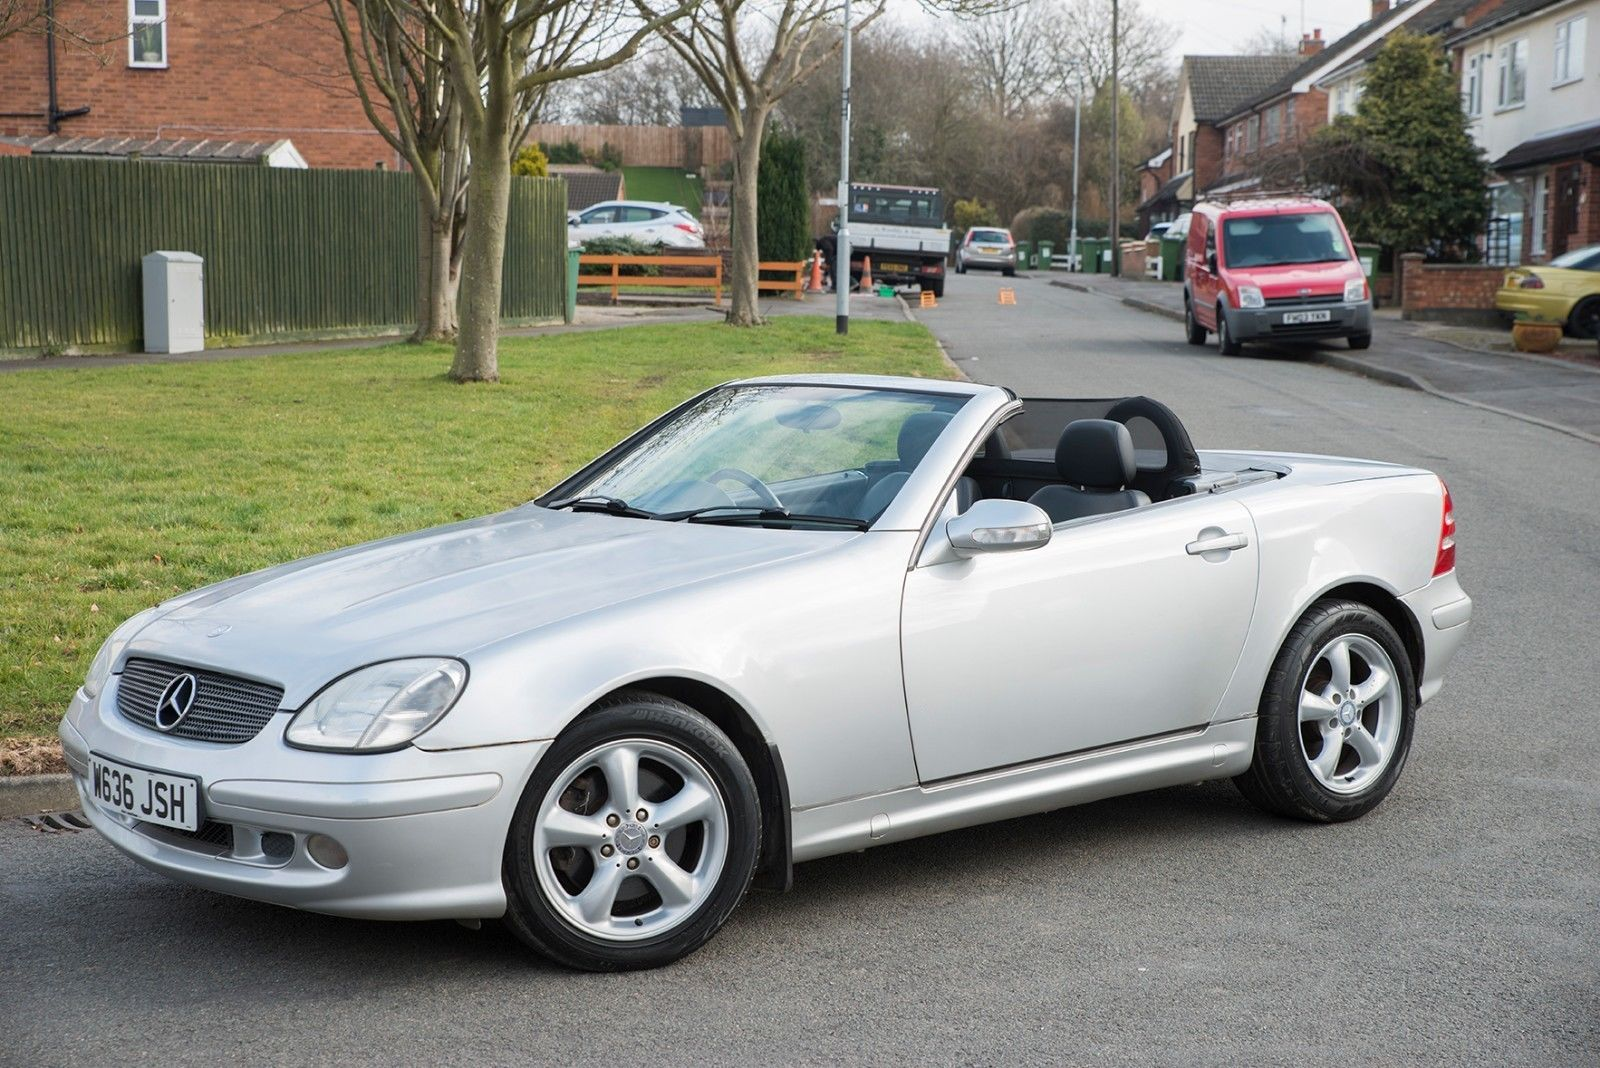 2000 W Mercedes Slk 320 Convertible Auto Just 94 000 Miles Full Service History 1 795 00